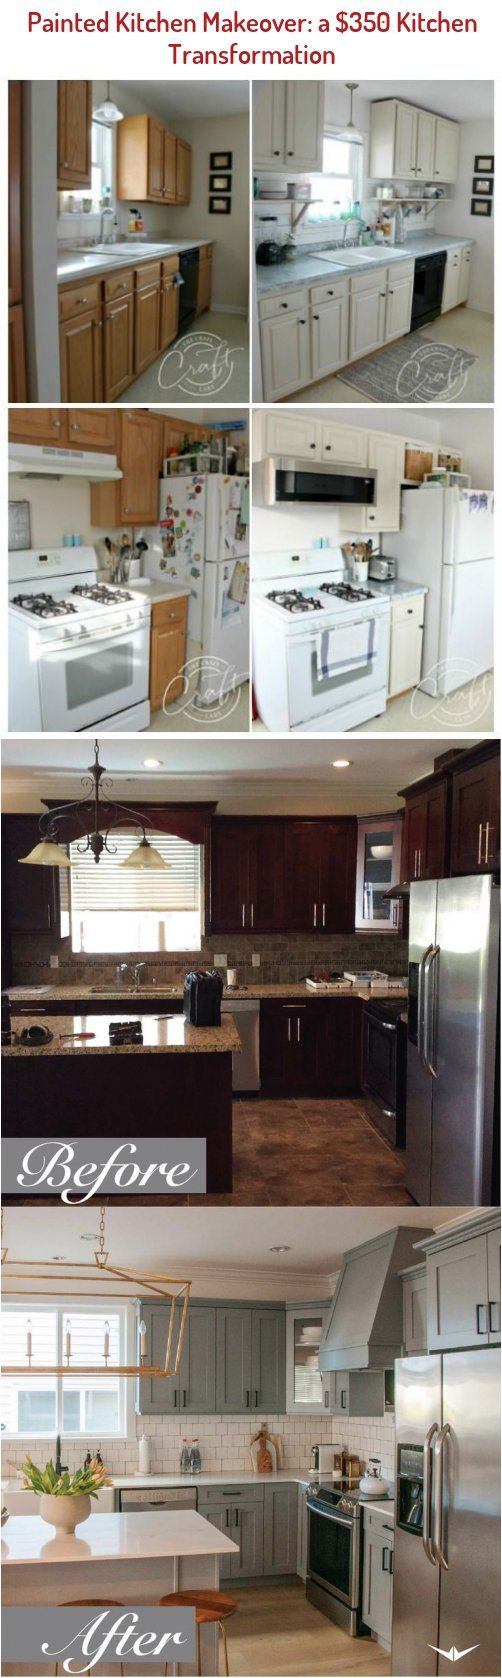 kitchen before and after a Budgetfriendly kitchen